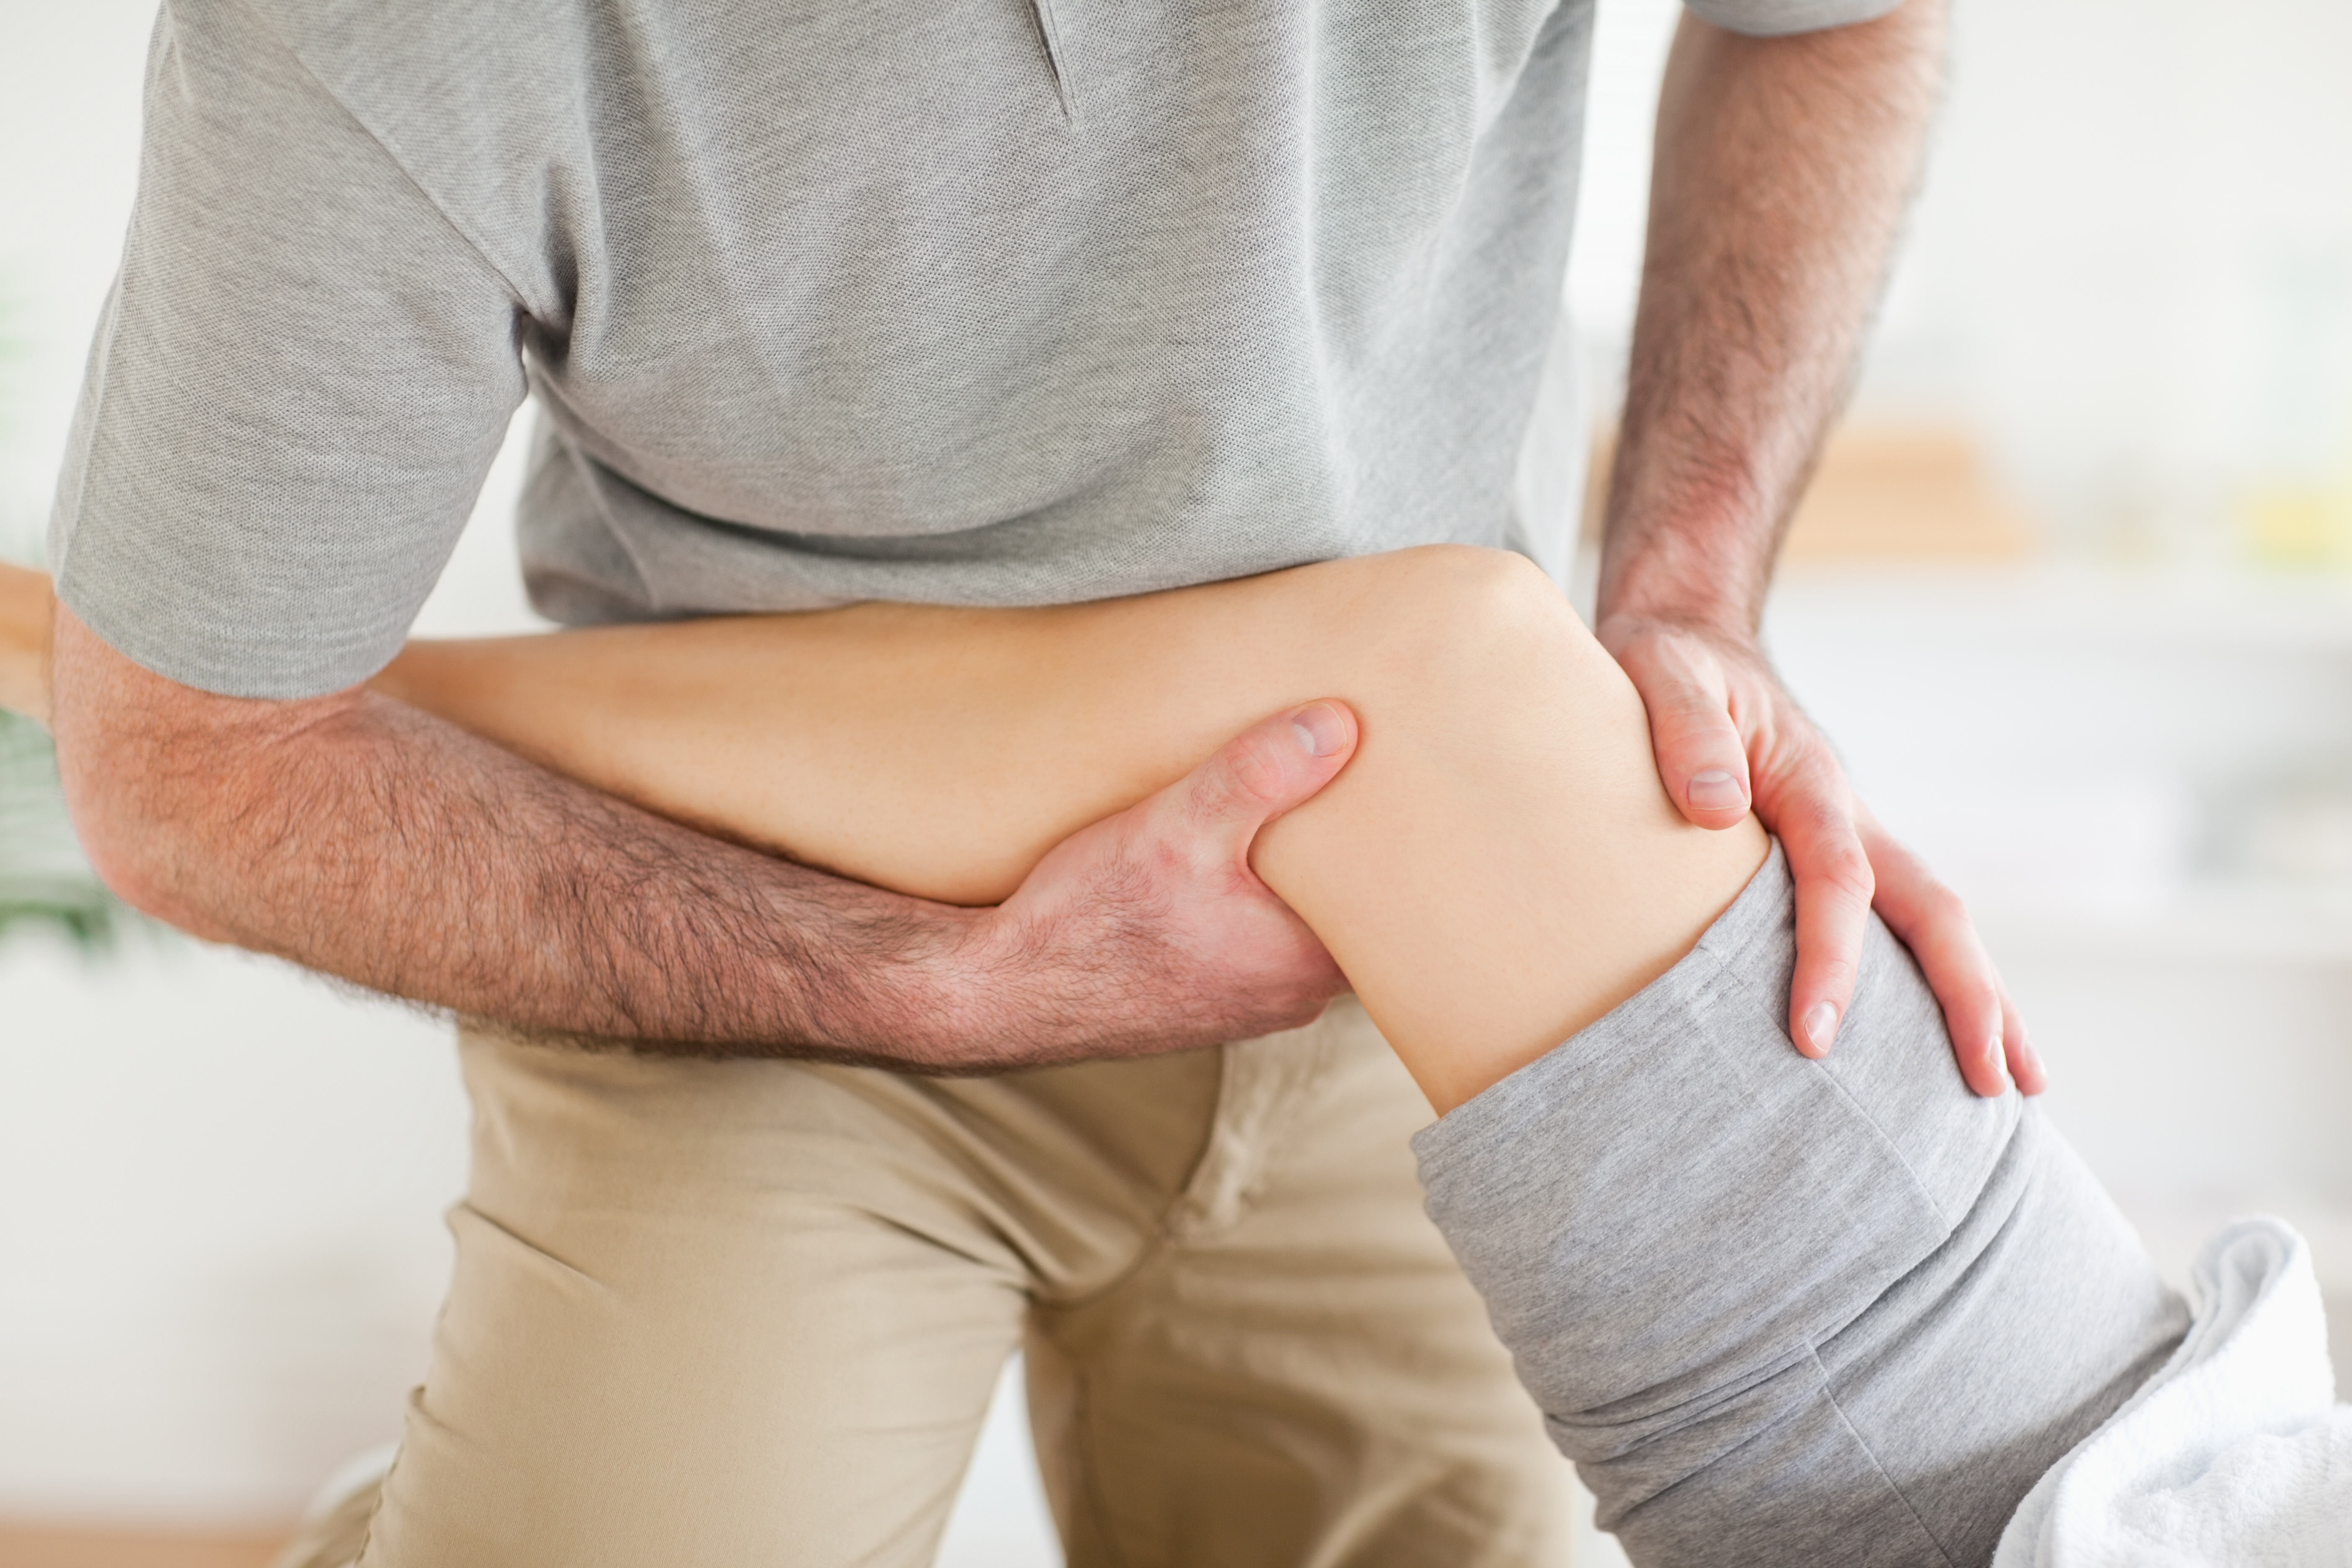 4 Reasons Physical Therapy Should be Your First Choice When Treating Pain.